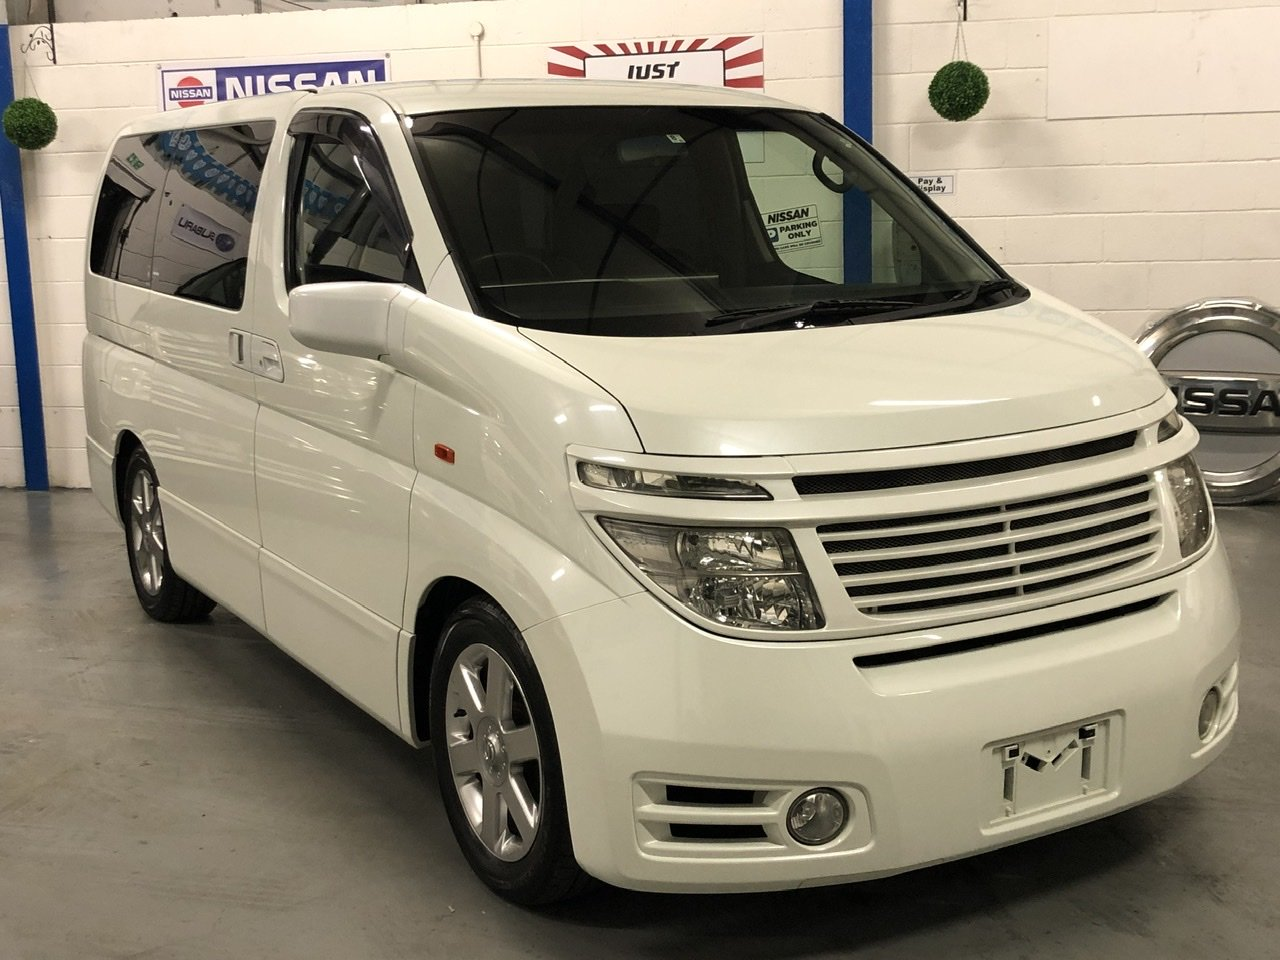 2004 NISSAN ELGRAND E51 3.5 V6 HIGHWAY STAR, White, 8 Seater MPV For Sale (picture 1 of 6)